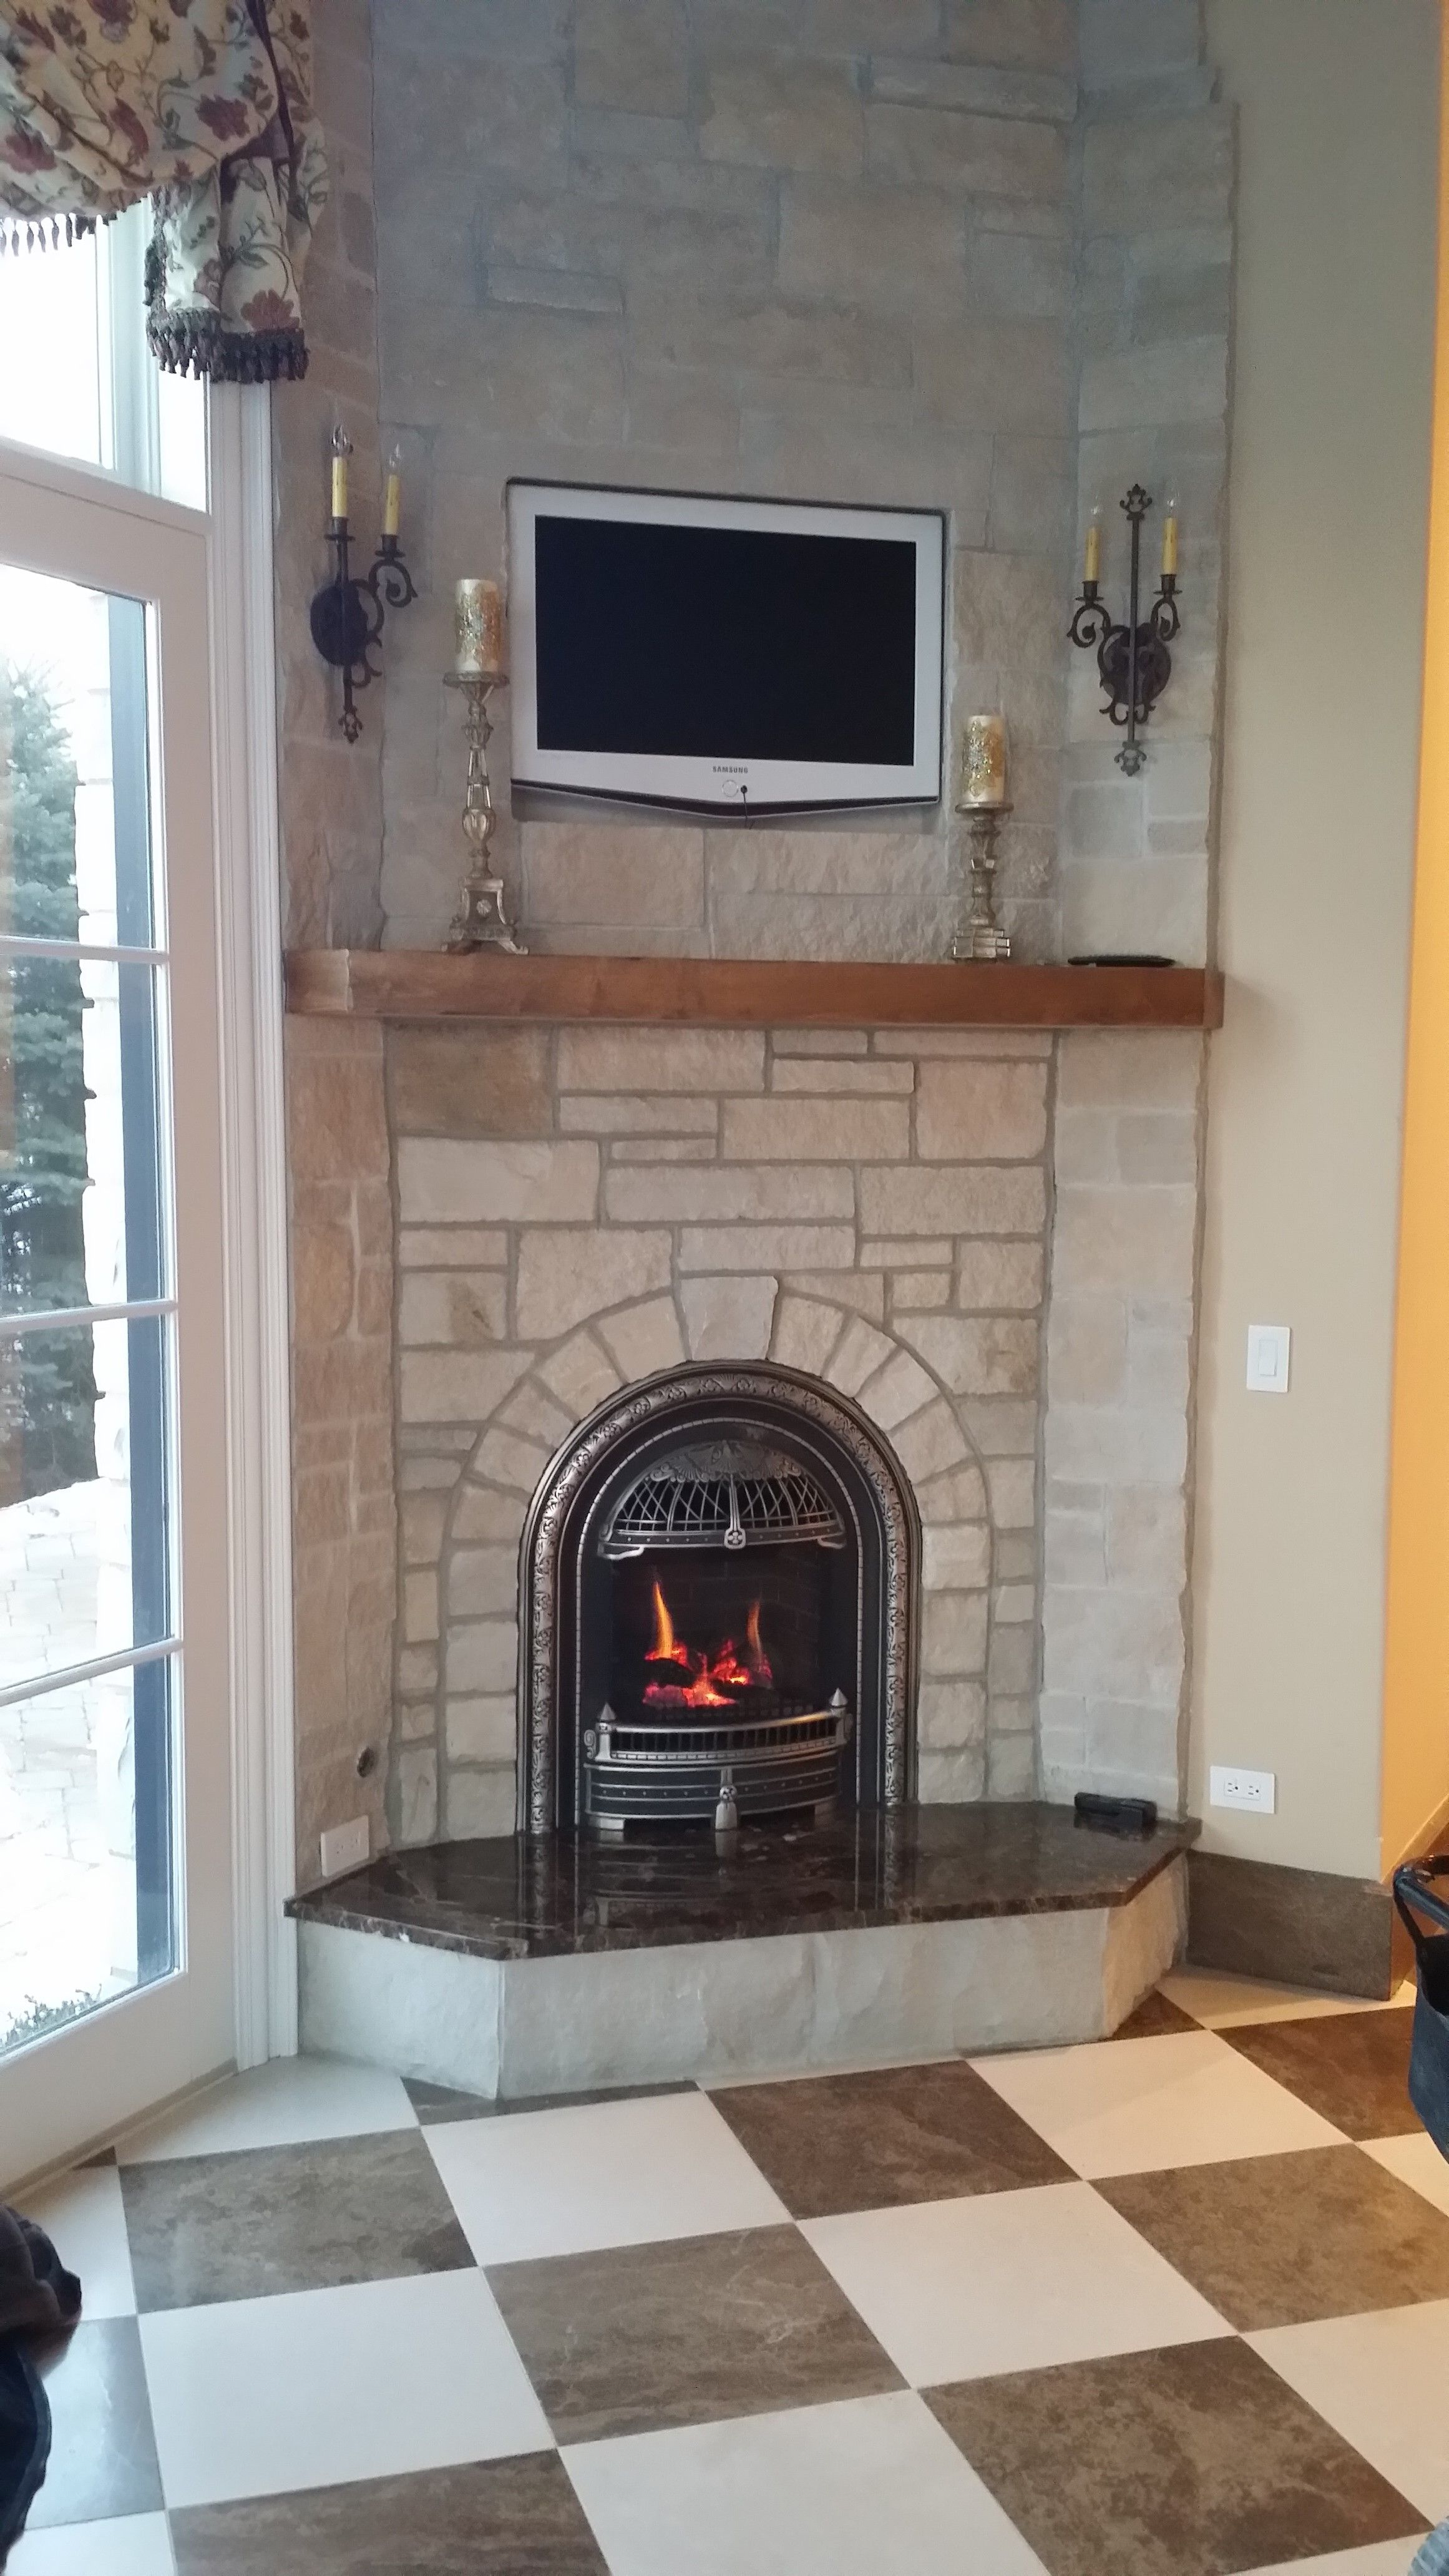 valor 530iln log fire radiant gas fireplace and insert installed with windsor arch in custom. Black Bedroom Furniture Sets. Home Design Ideas